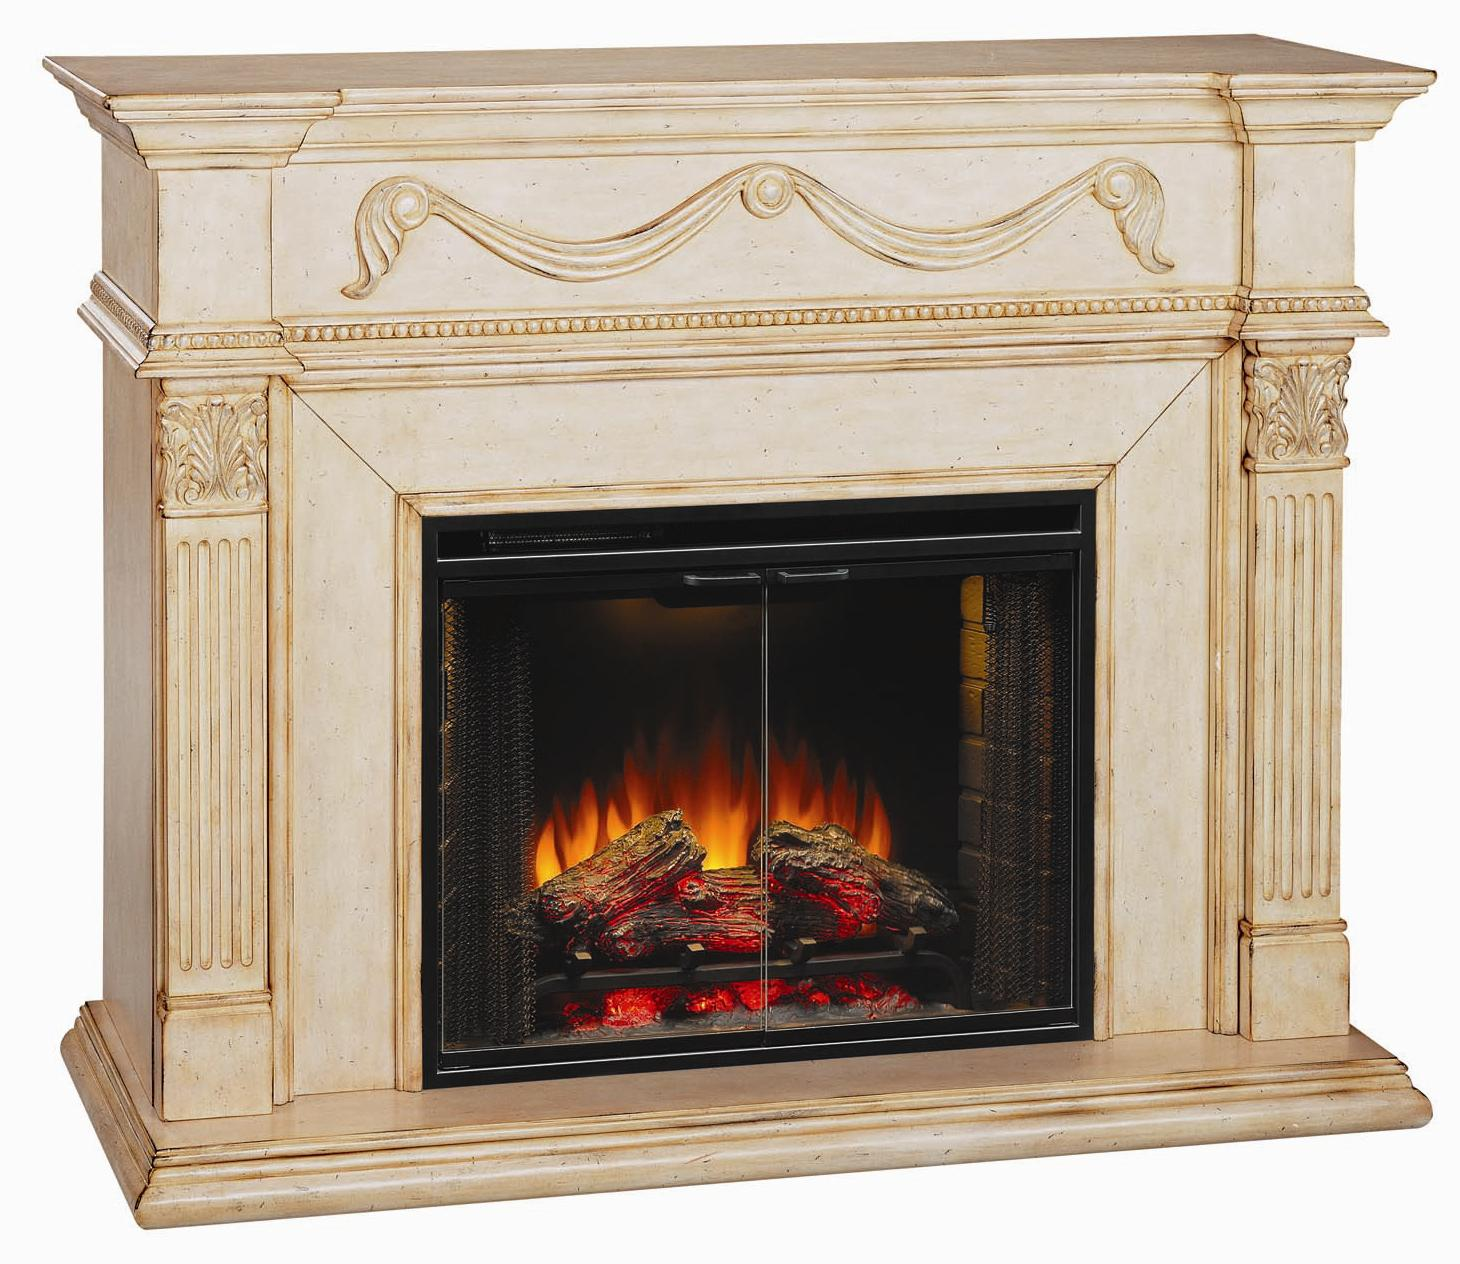 ClassicFlame Gossamer Fireplace - Item Number: 28WM184VAW-0408